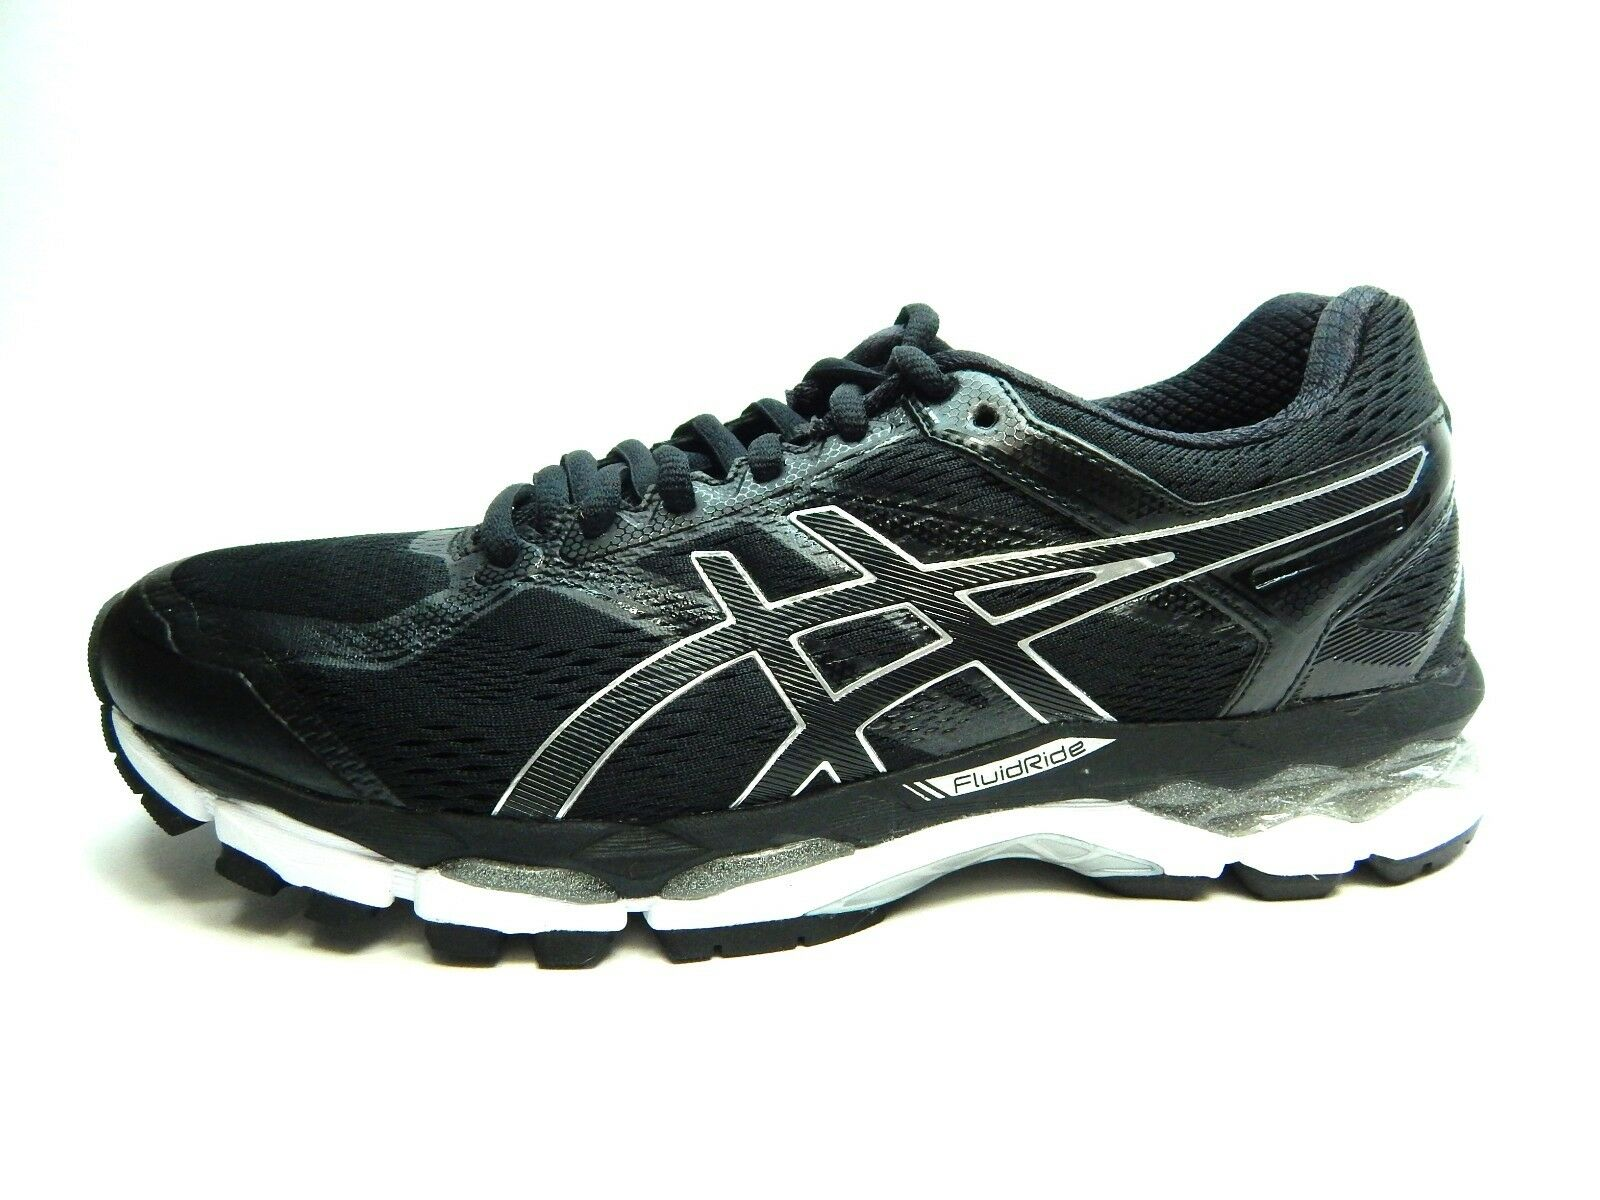 ASICS SURVEYOR 5 T6B4N 9099 BLACK ONYX 7 WEISS MEN Schuhe SIZE 7 ONYX TO 13 b6fb2a